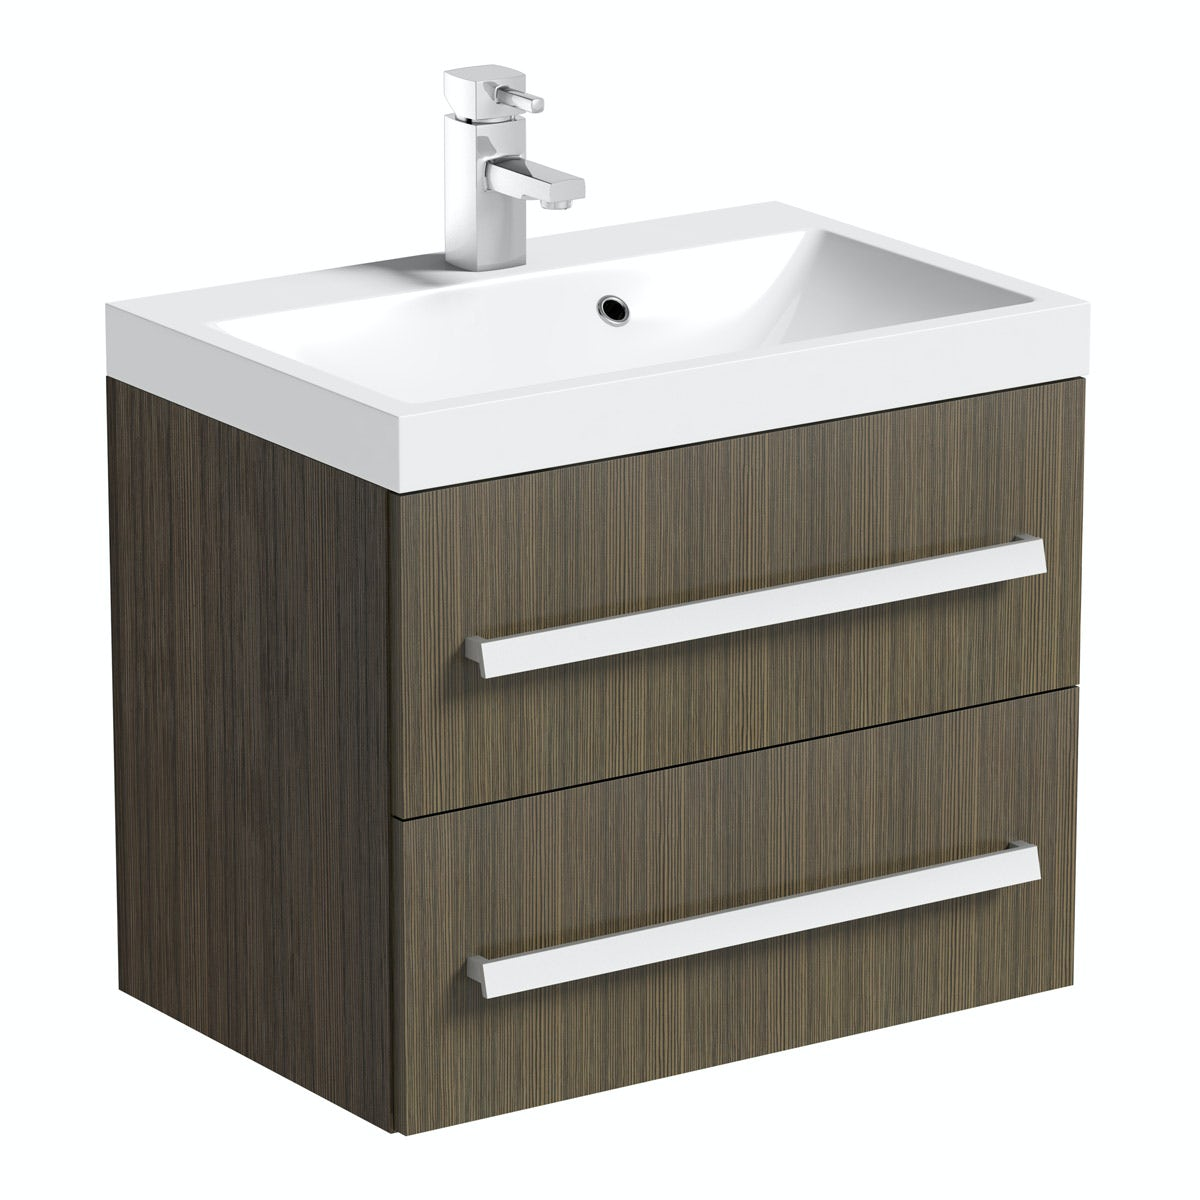 Orchard Wye Walnut Wall Hung Vanity Unit With Sink 600mm